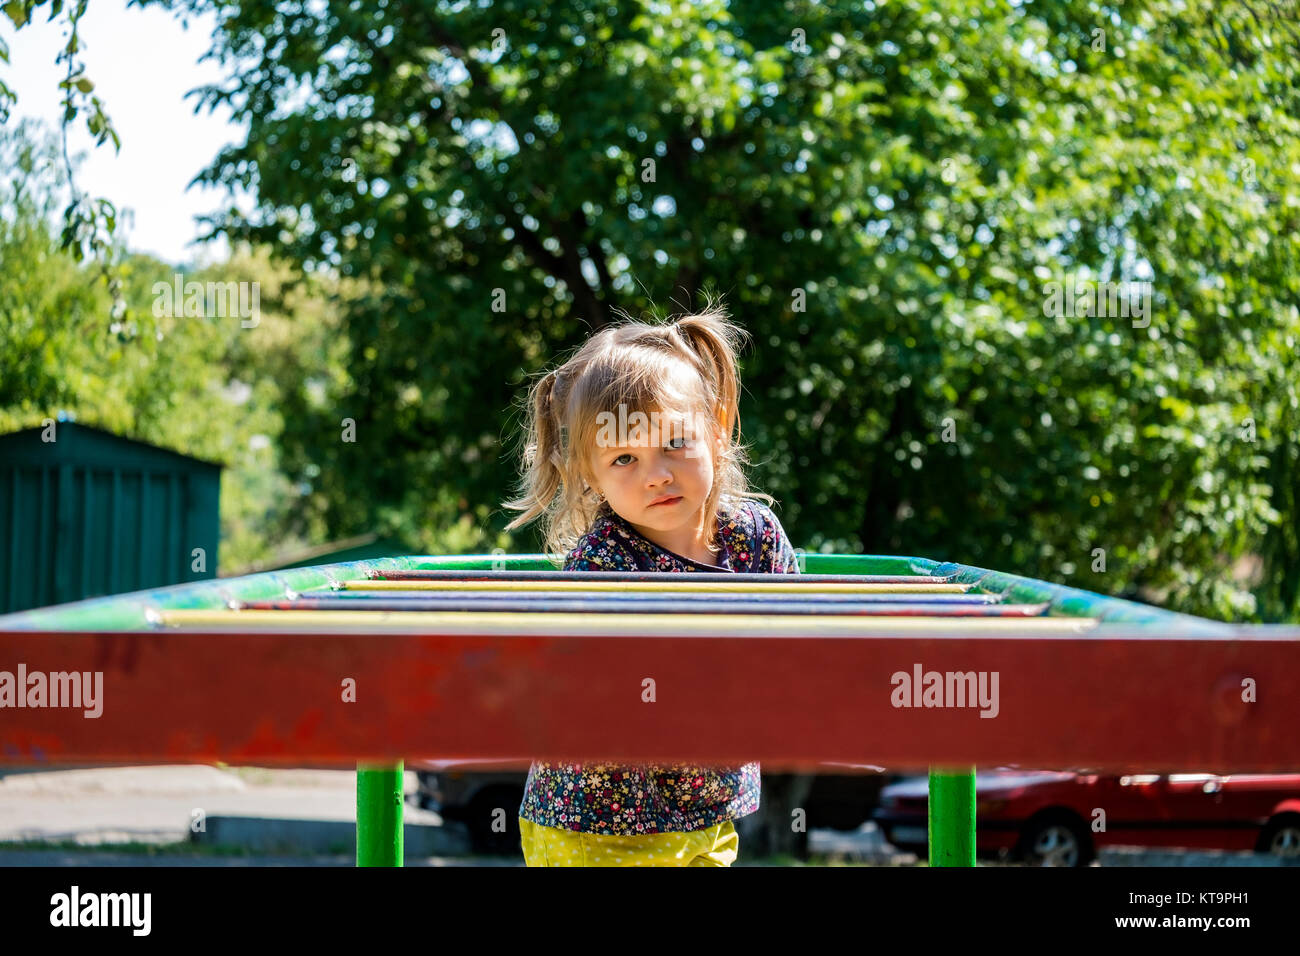 Little girl in yellow sherds and a floral tunic climbed through the staircase and bit her lip - Stock Image